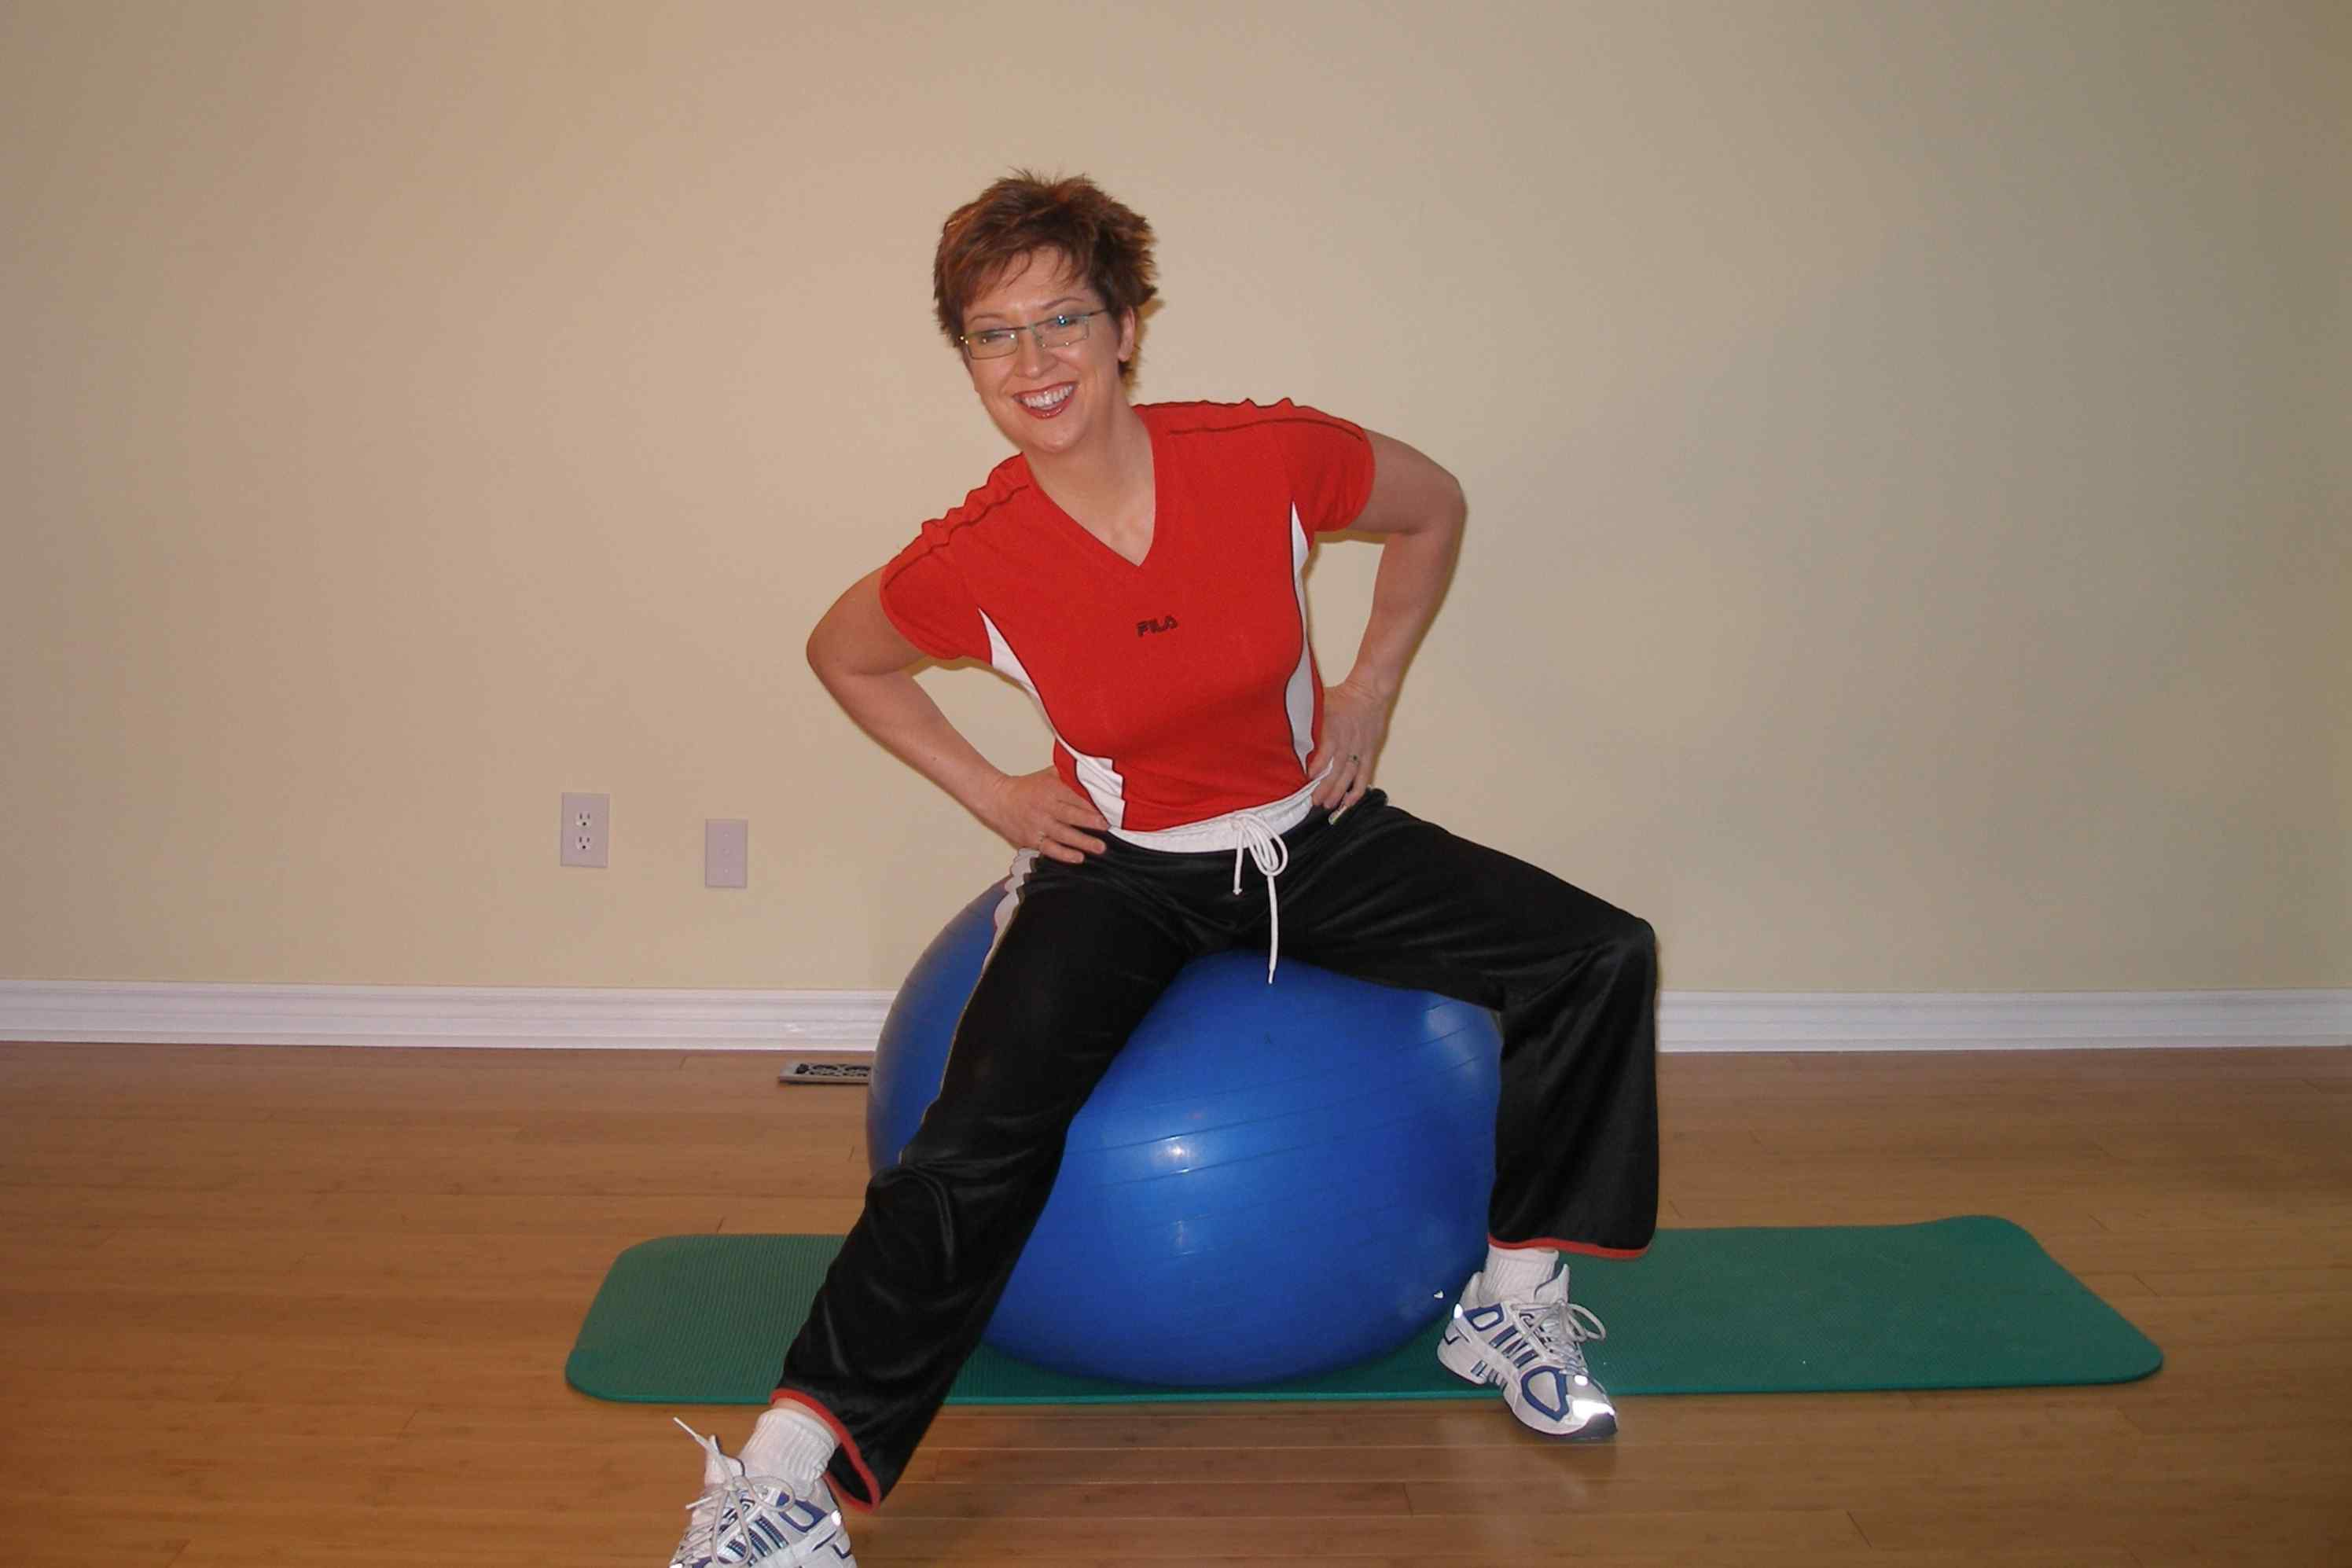 exercise ball stretching hams